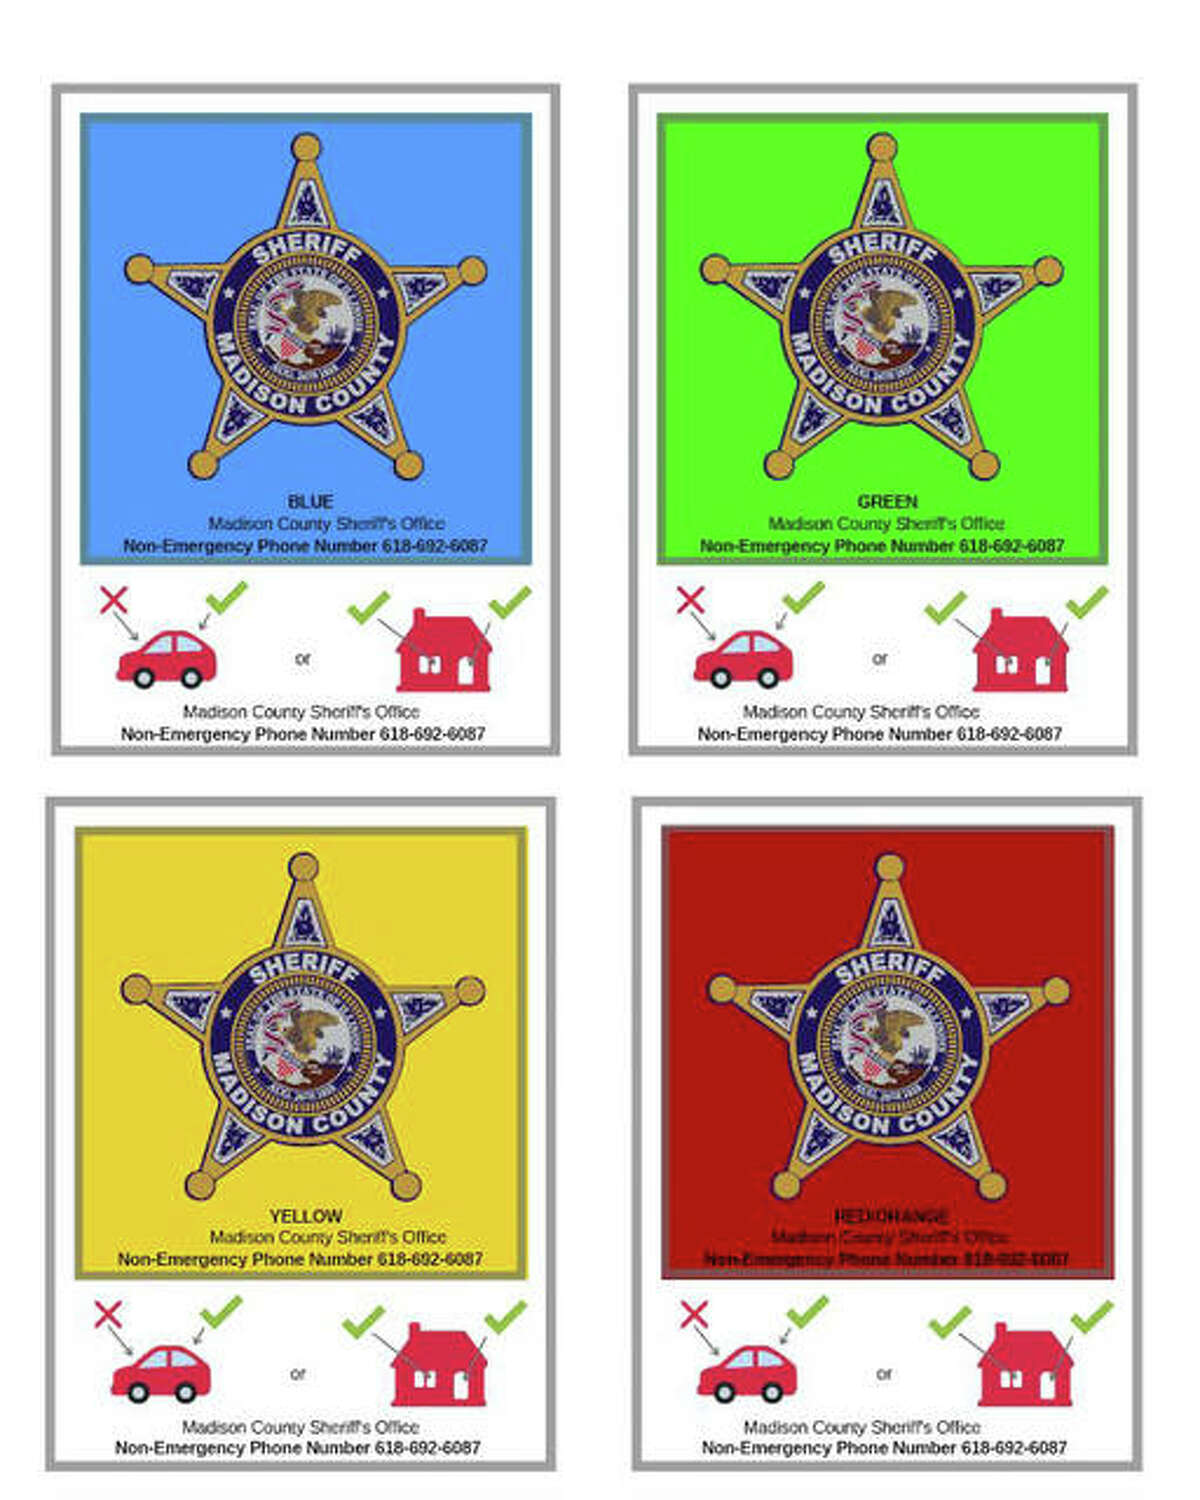 These are among the color-coded PIN (Potentially Impaired or Non-Verbal Person) Stickers available at the Madison County Sheriff's Office. The stickers are designed to alleviate potential communication issues between first responders and the people they serve.